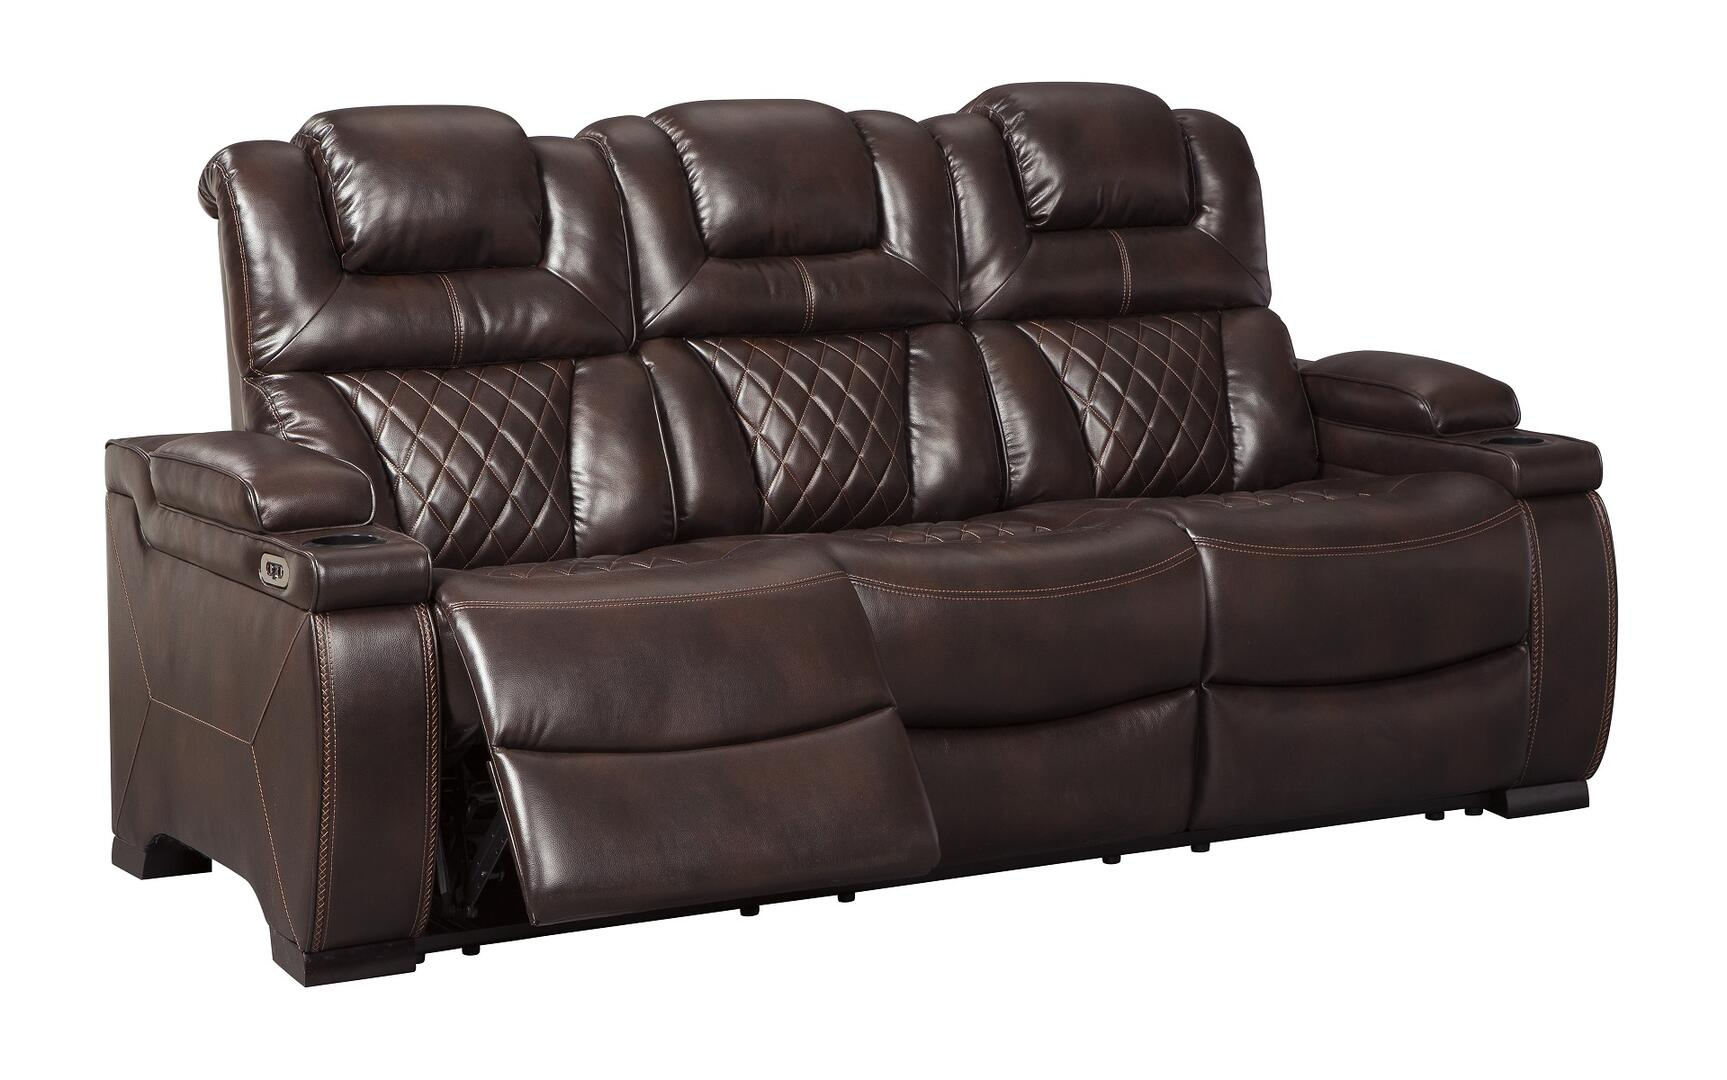 Signature Design By Ashley 7540715 Warnerton Series Faux Leather